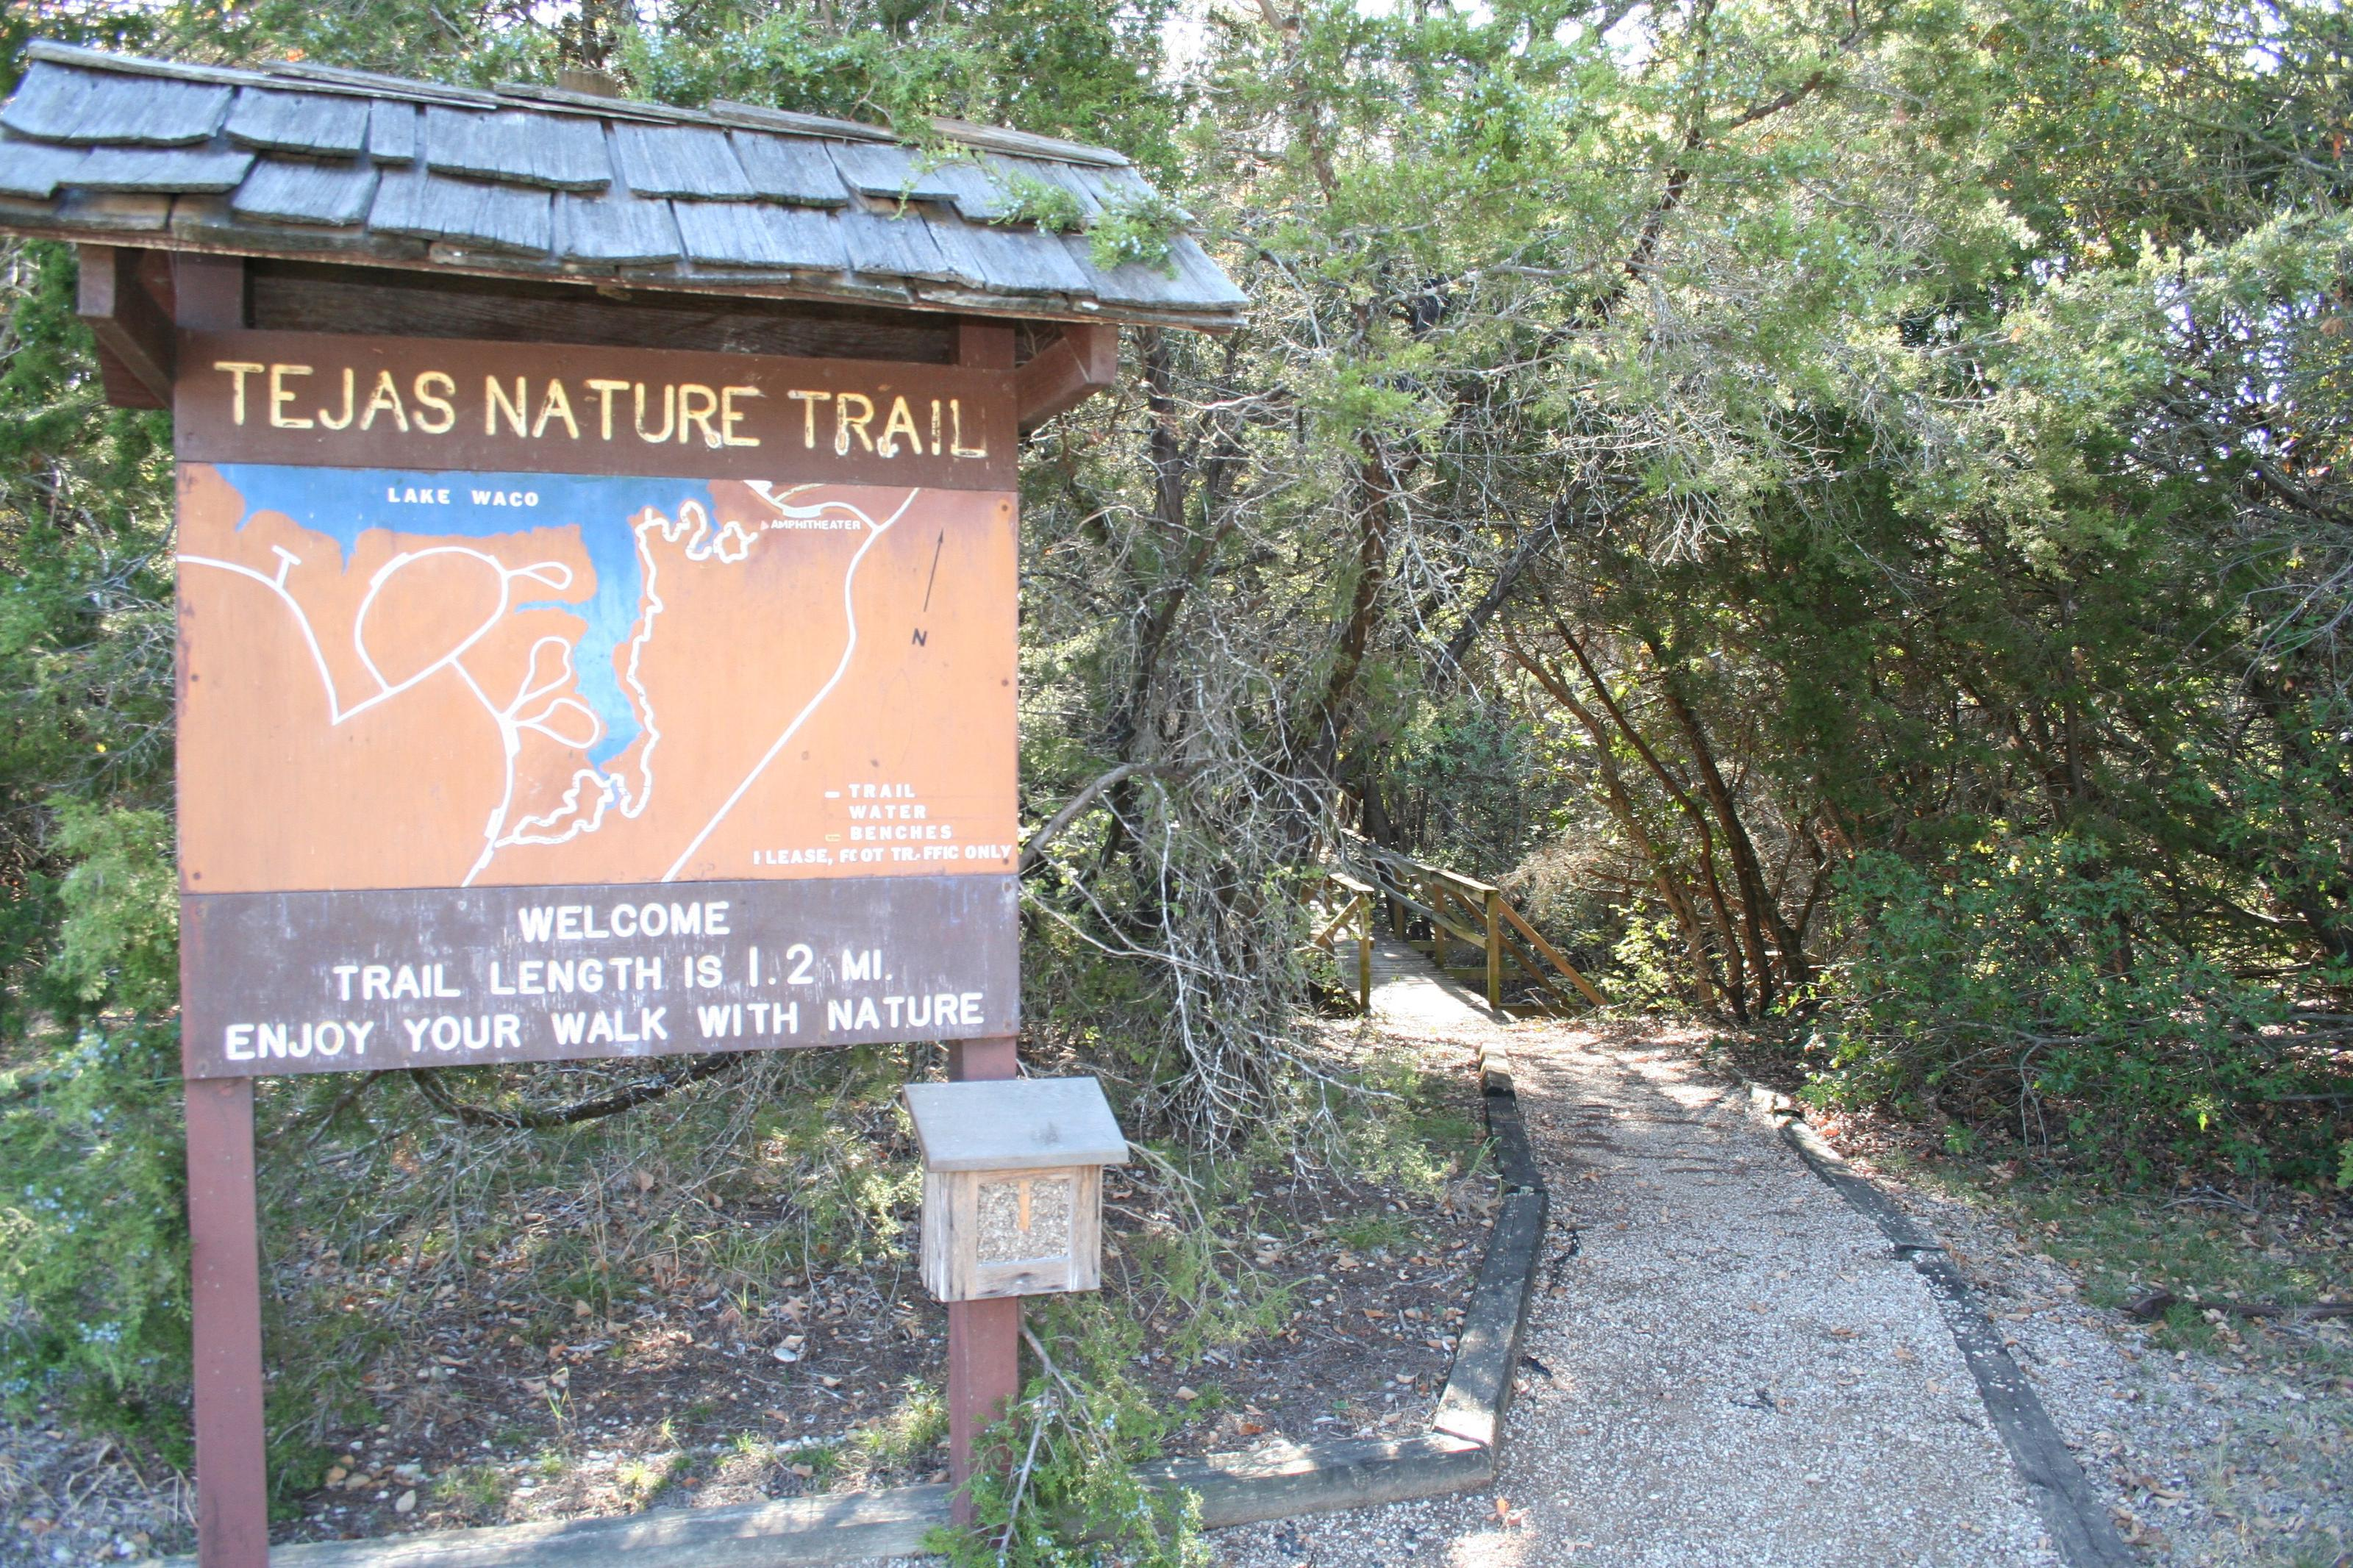 trail entranceEntrance to Tejas Nature Trail